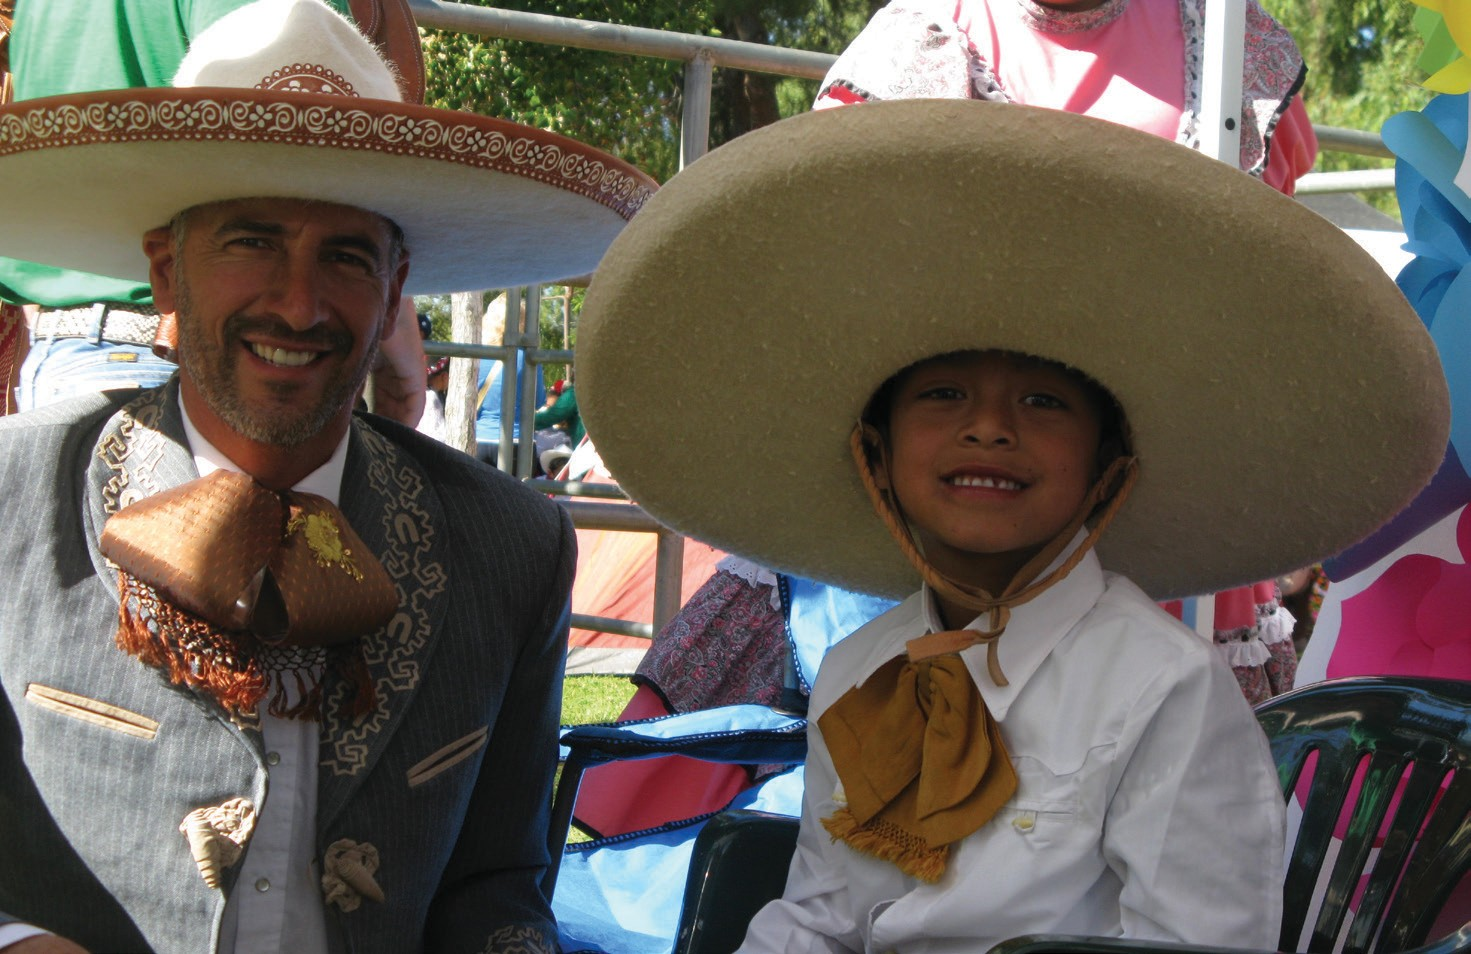 Dressed in authentic Mexican Charro duds, Jose Rodriguez, left, and Alexander Noyola wait for their performance with Herrencia Charra on the Grande Stage at last Saturday's event in Grape Day Park.